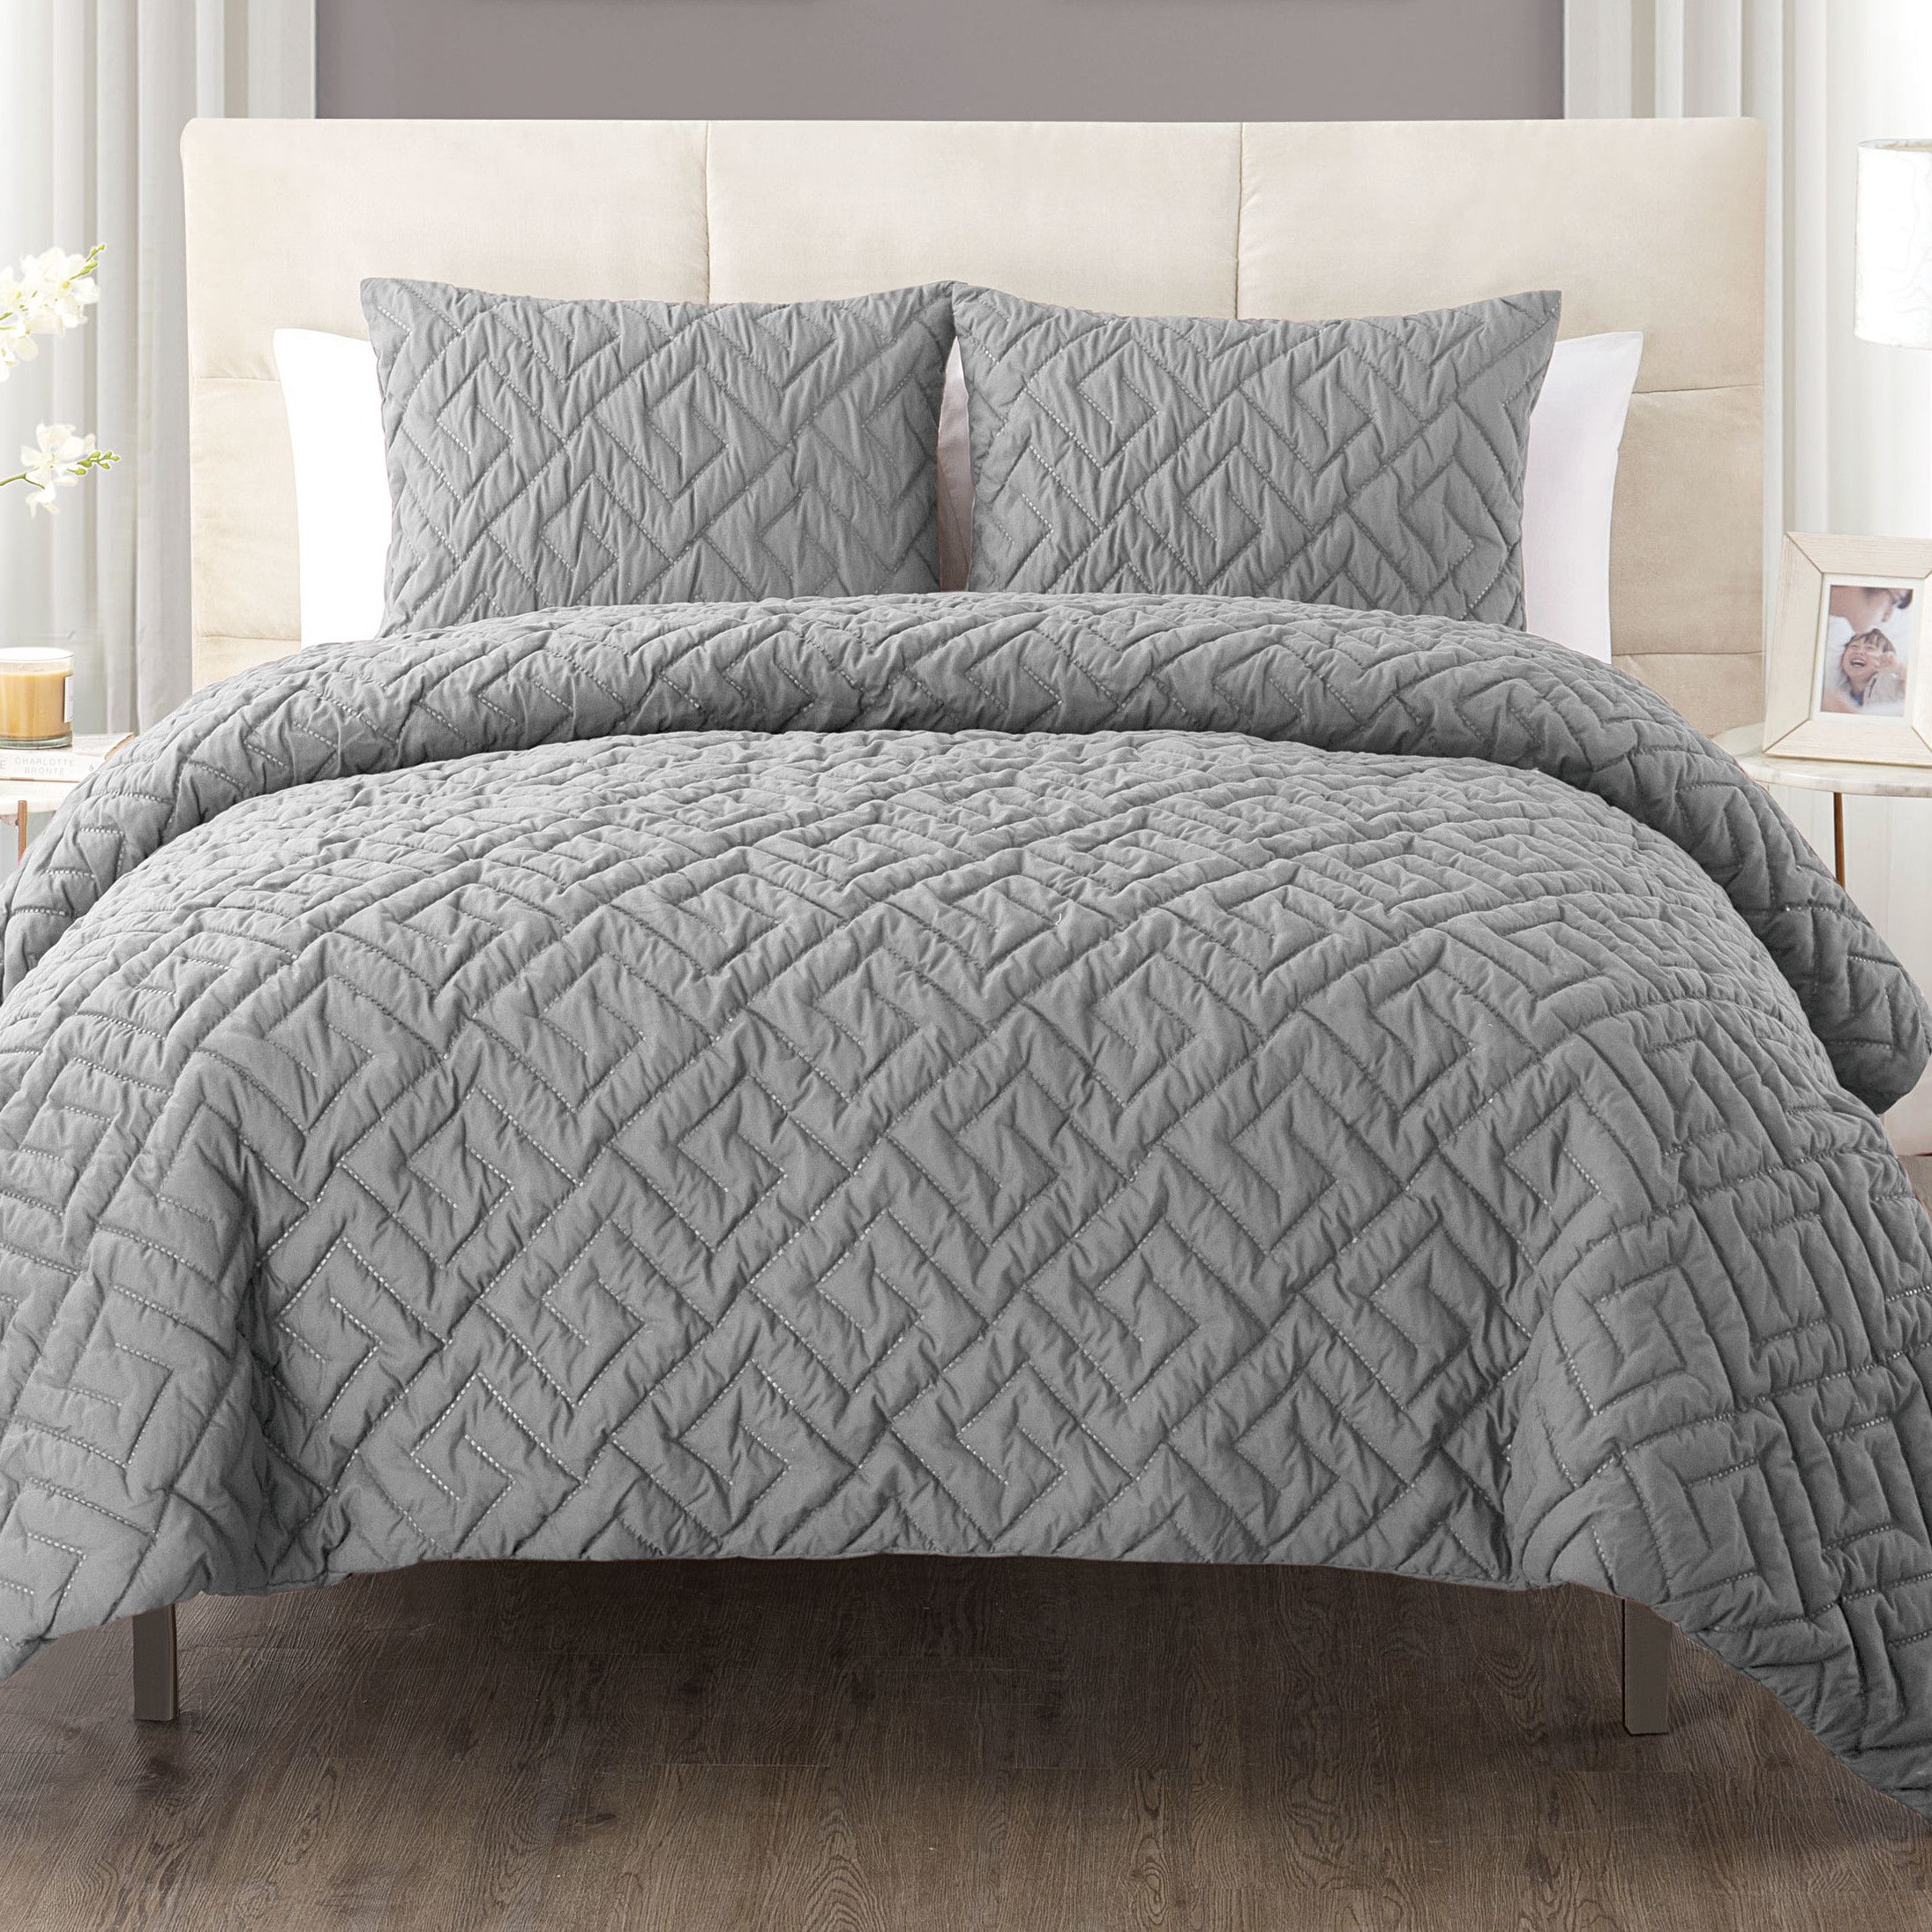 Varick Gallery Saylor 3 Piece Comforter Set U0026 Reviews | Wayfair